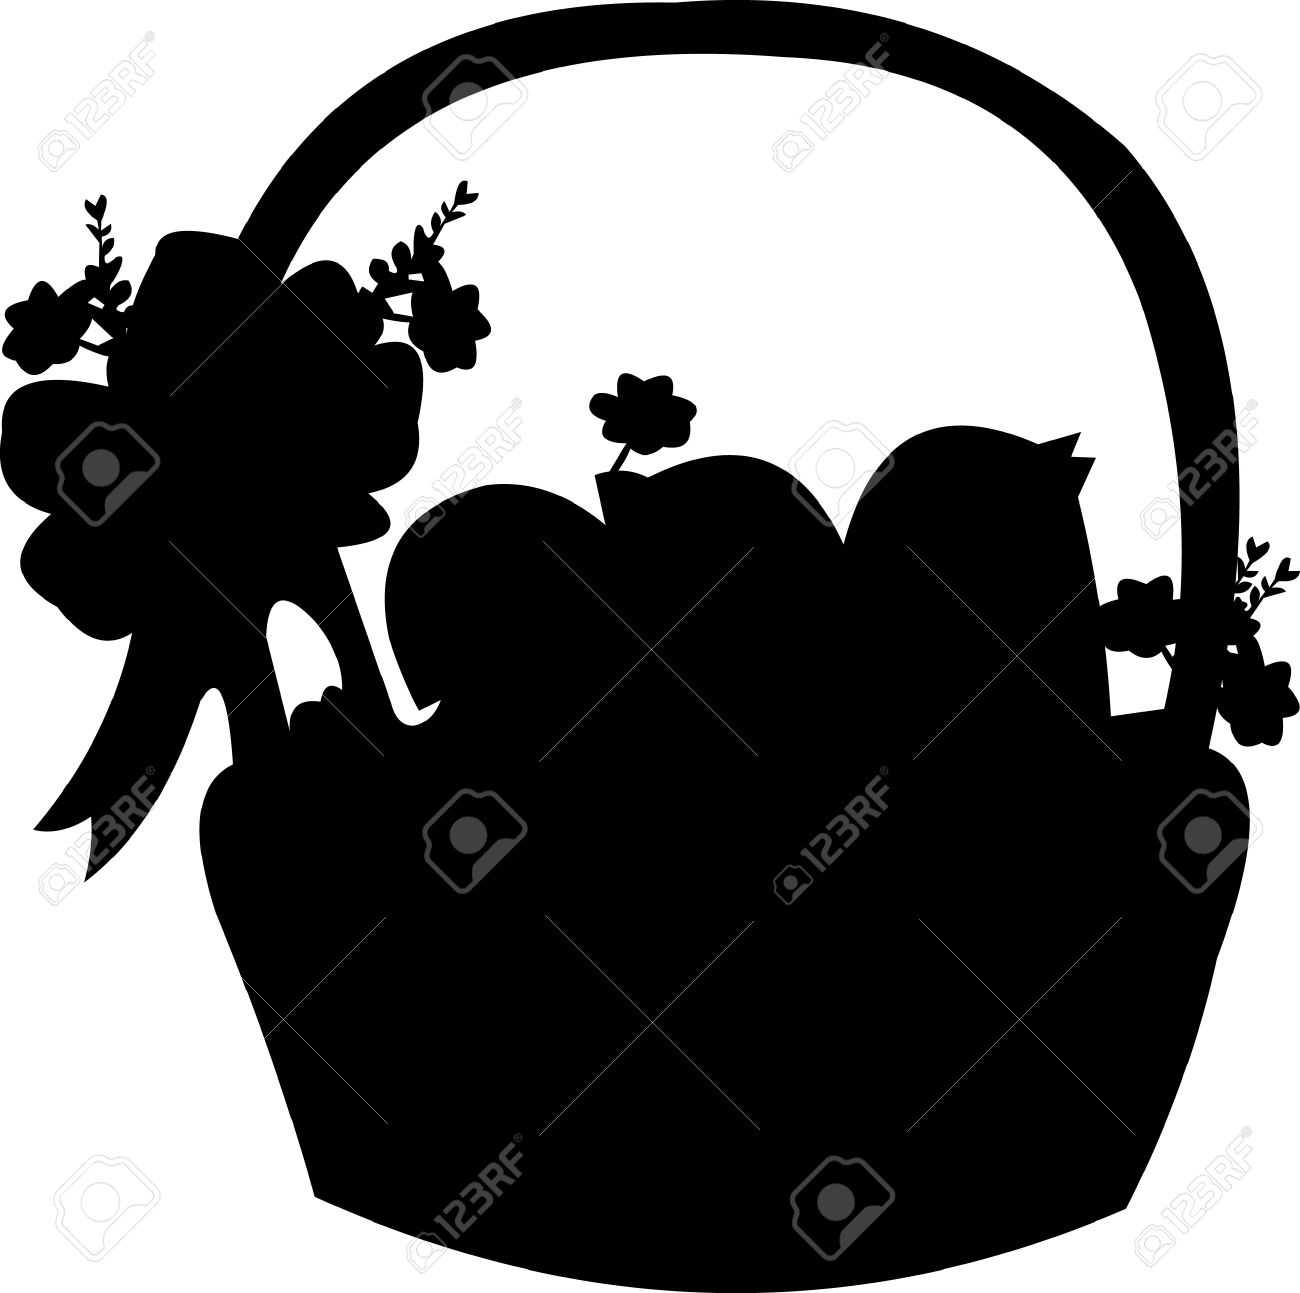 Easter basket silhouette clipart